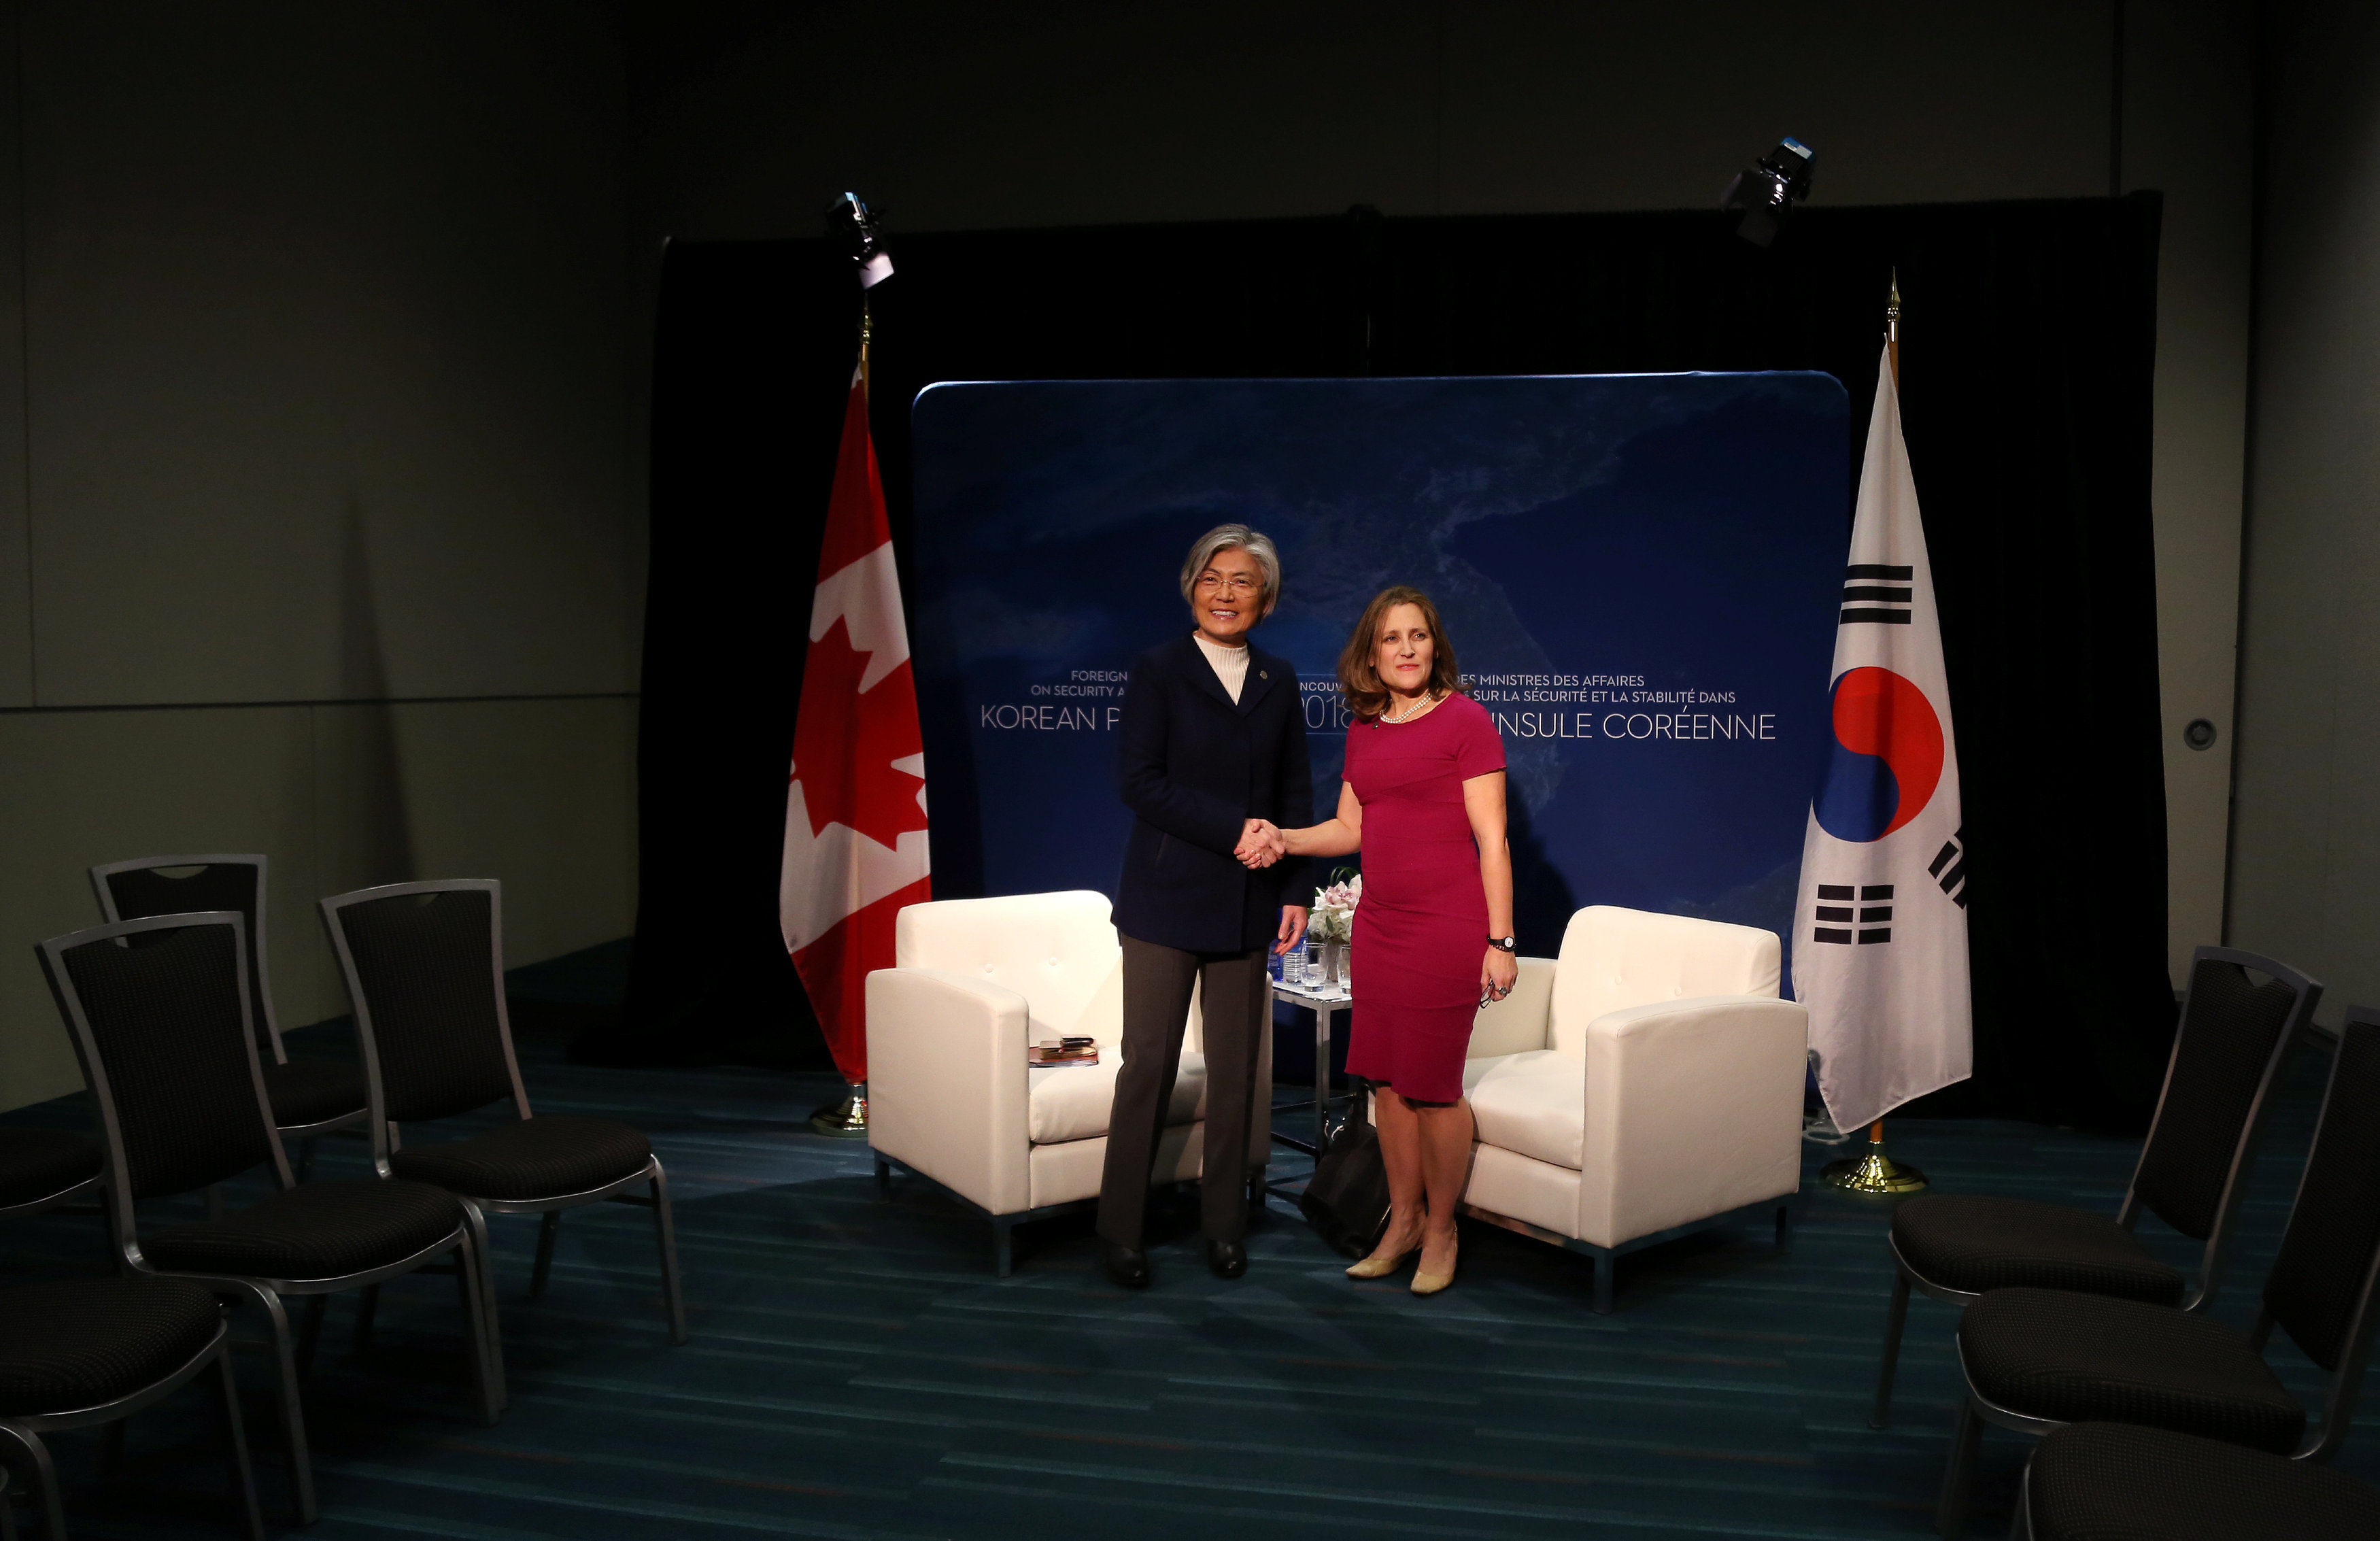 Canada's Minister of Foreign Affairs Chrystia Freeland holds a bilateral meeting with the South Korean Minister of Foreign Affairs Kang Kyung-wha in Vancouver, British Columbia, Canada, January 15, 2018